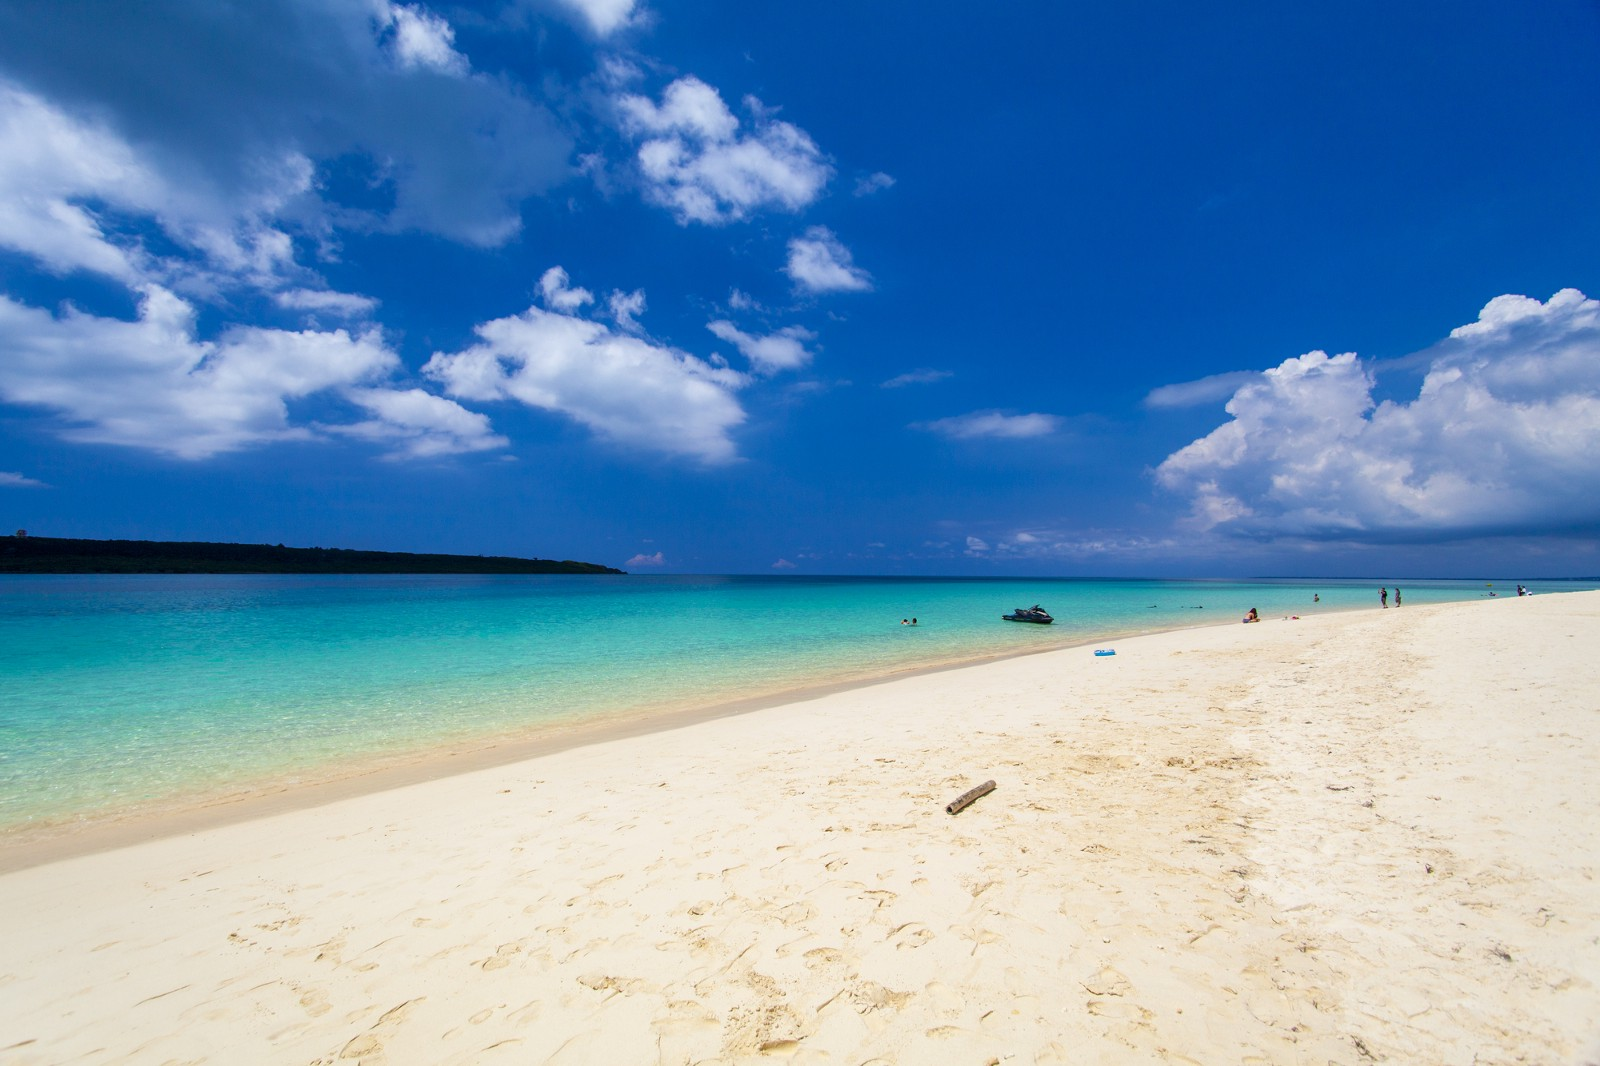 Okinawa Beaches: Best Season to Visit 2020